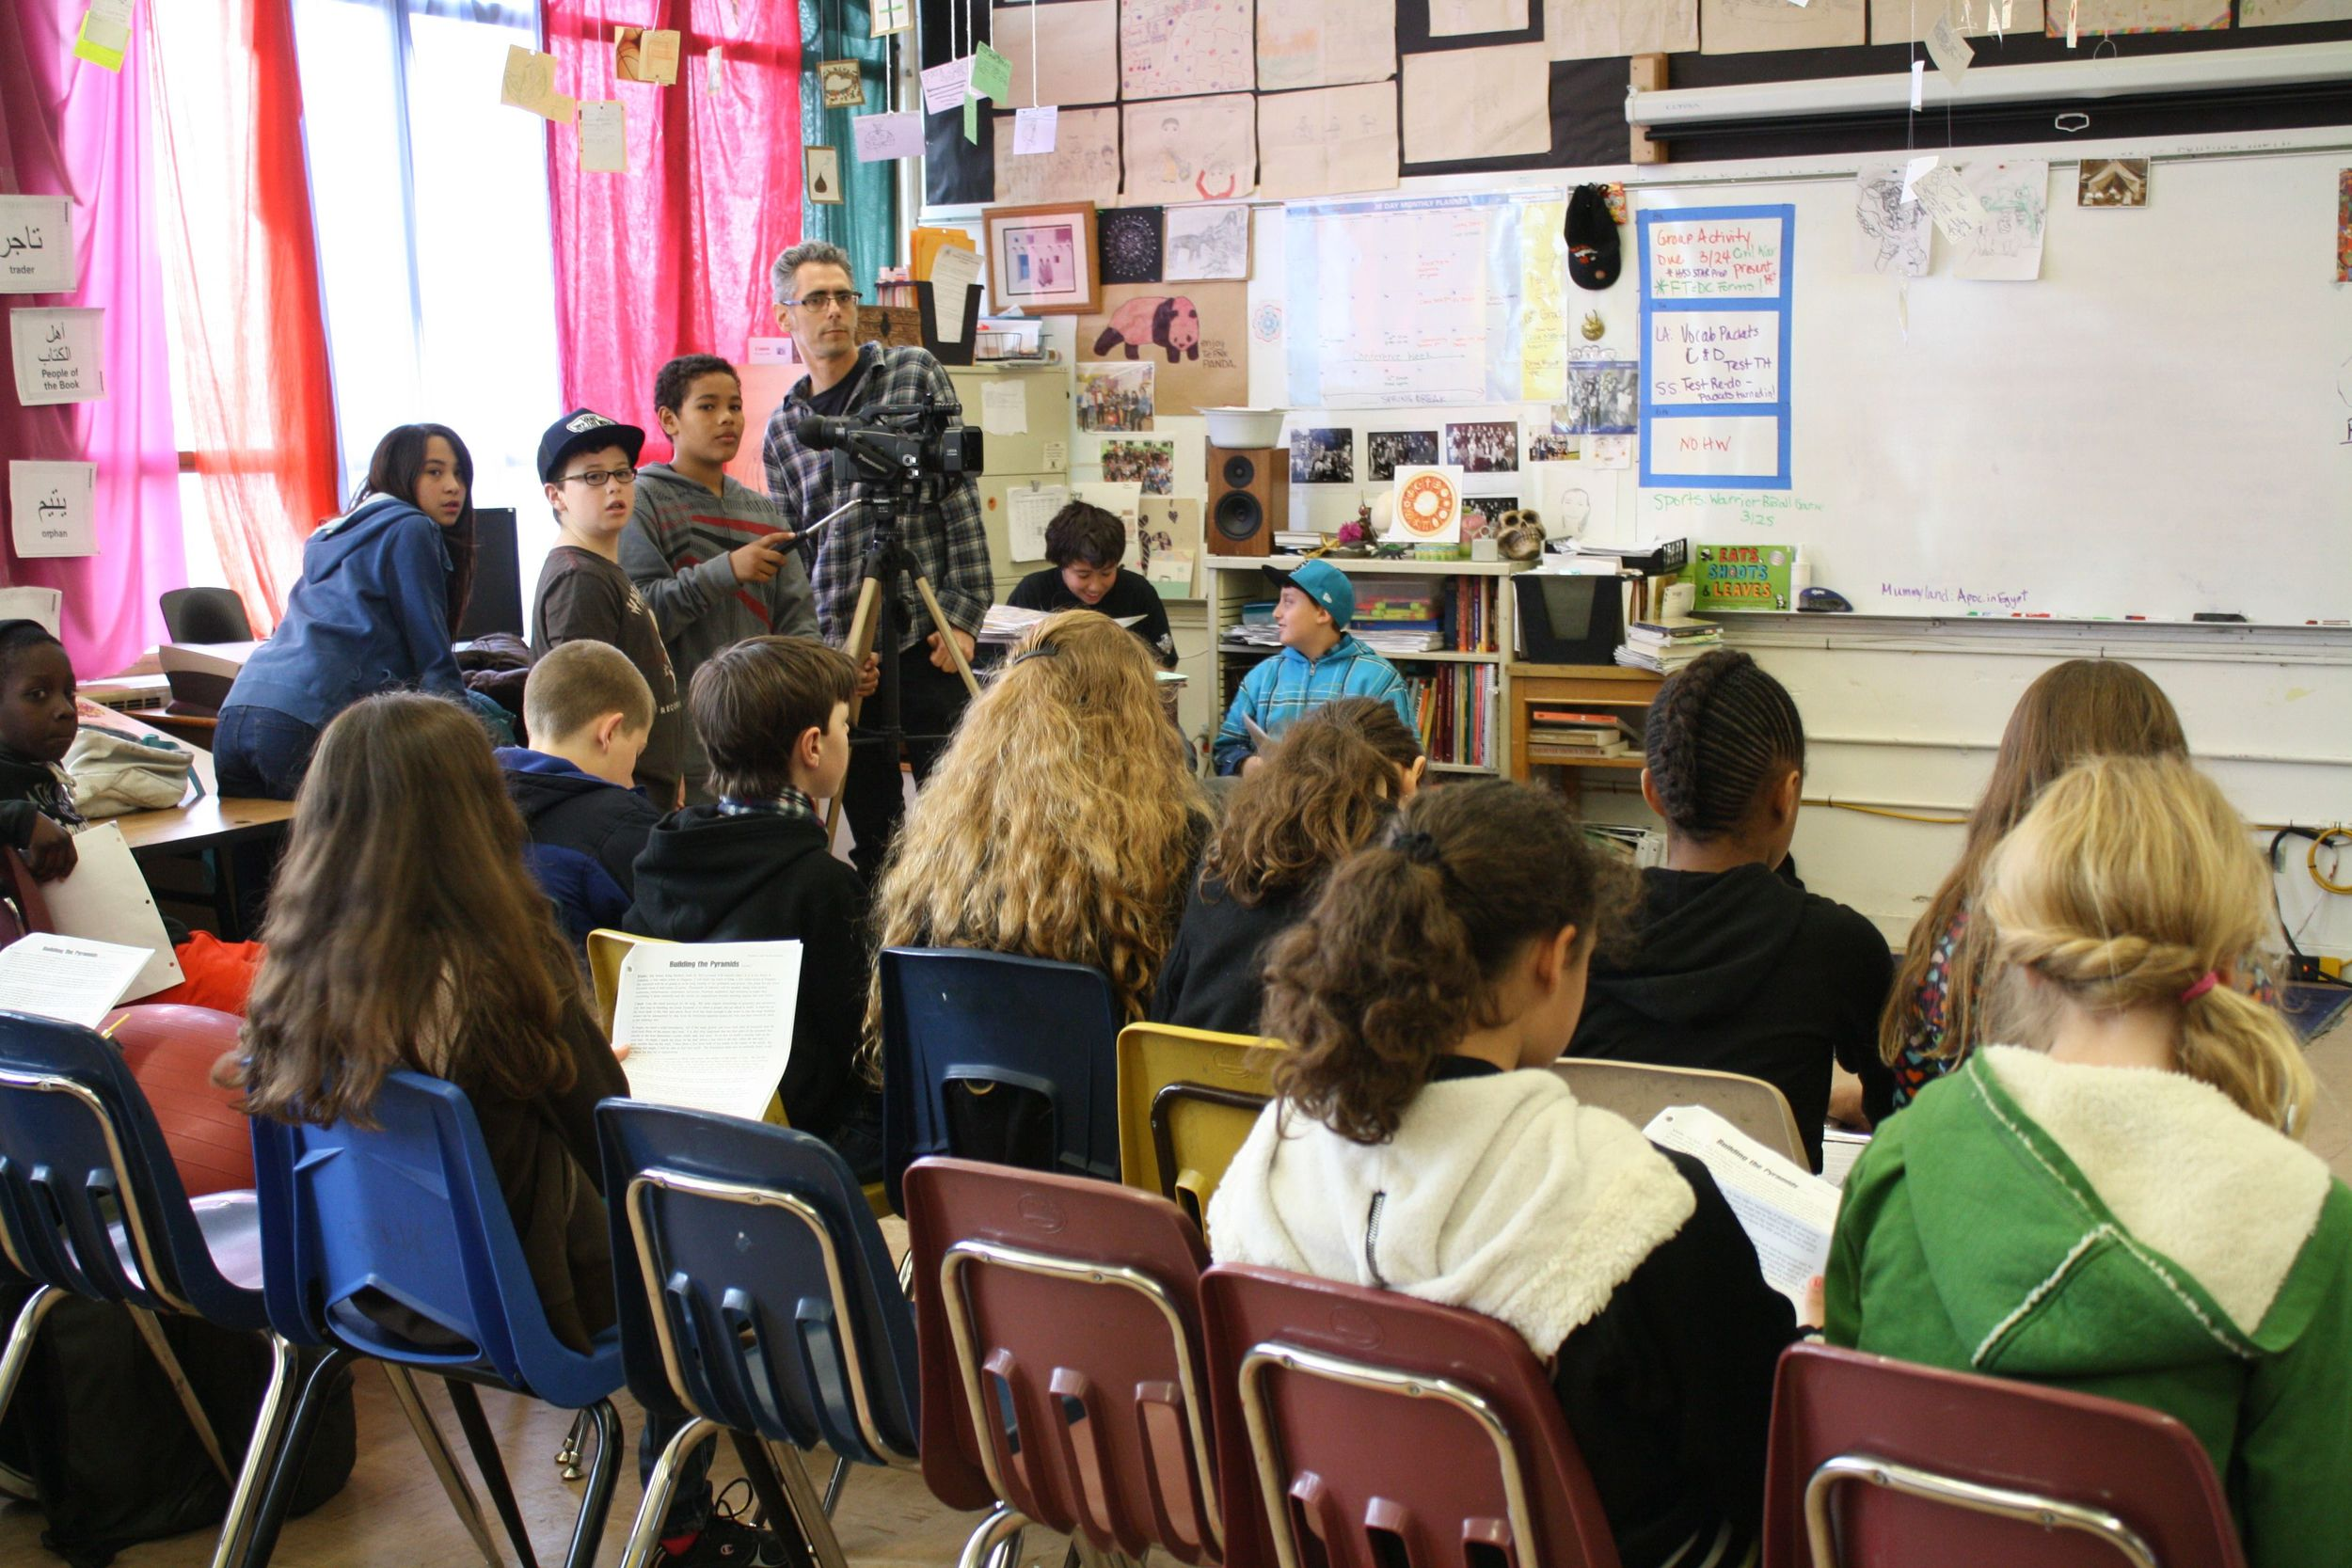 Filmmaker Danny Plotnick works with 7th graders at Creative Arts Charter School in the FITC program.